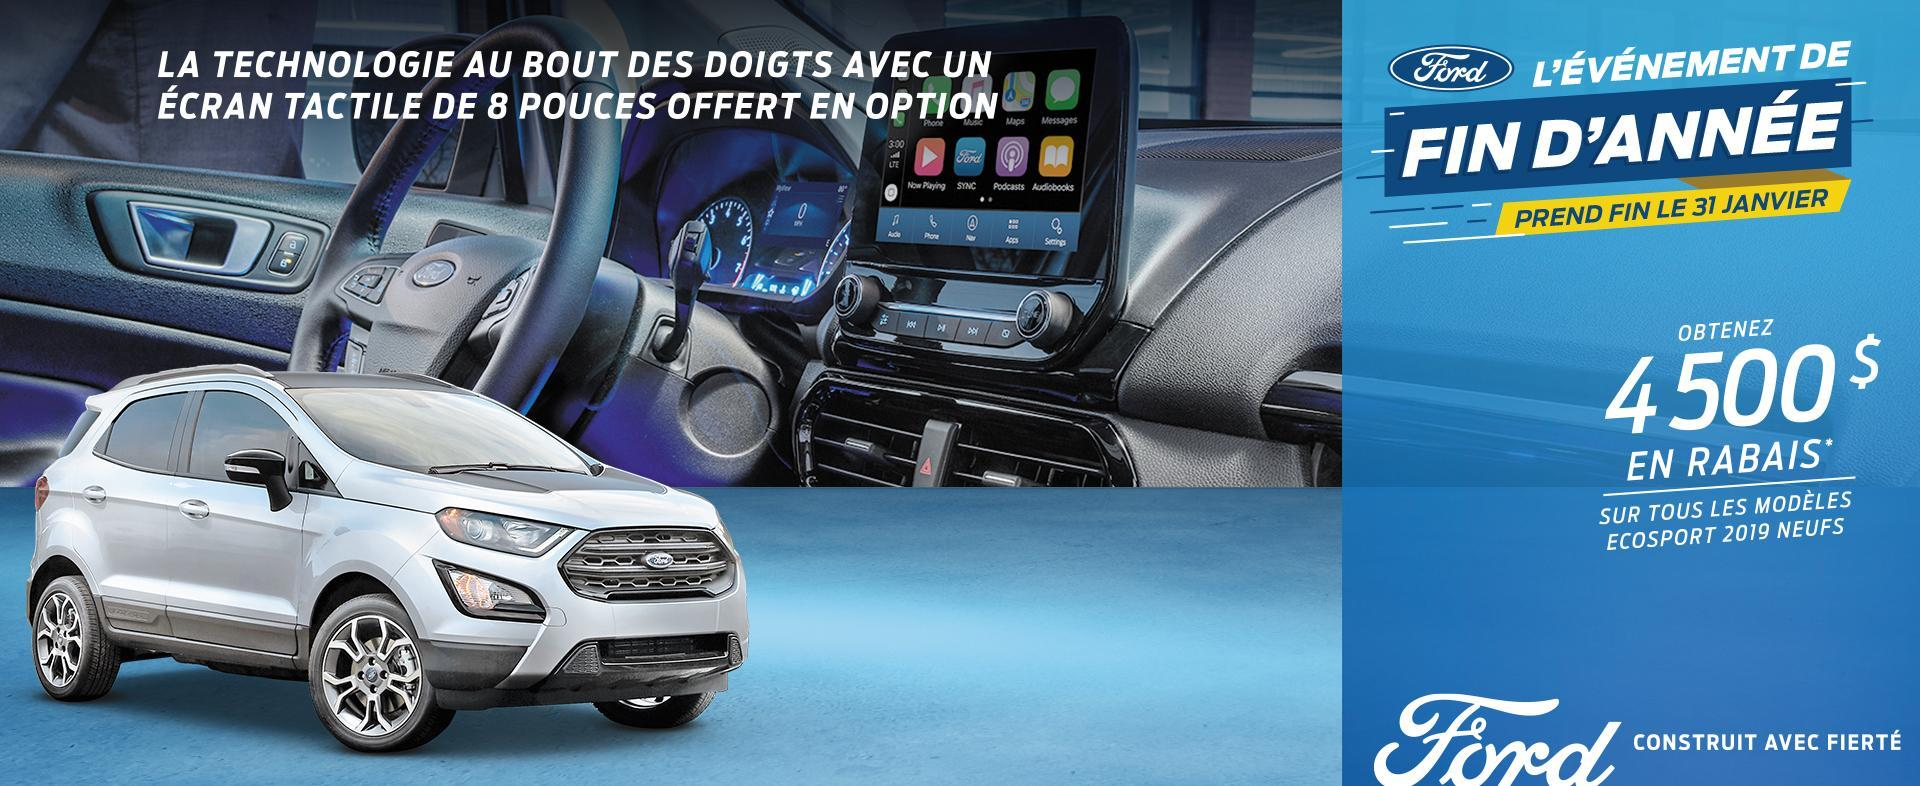 2019 Ford Ecosport Year End Event